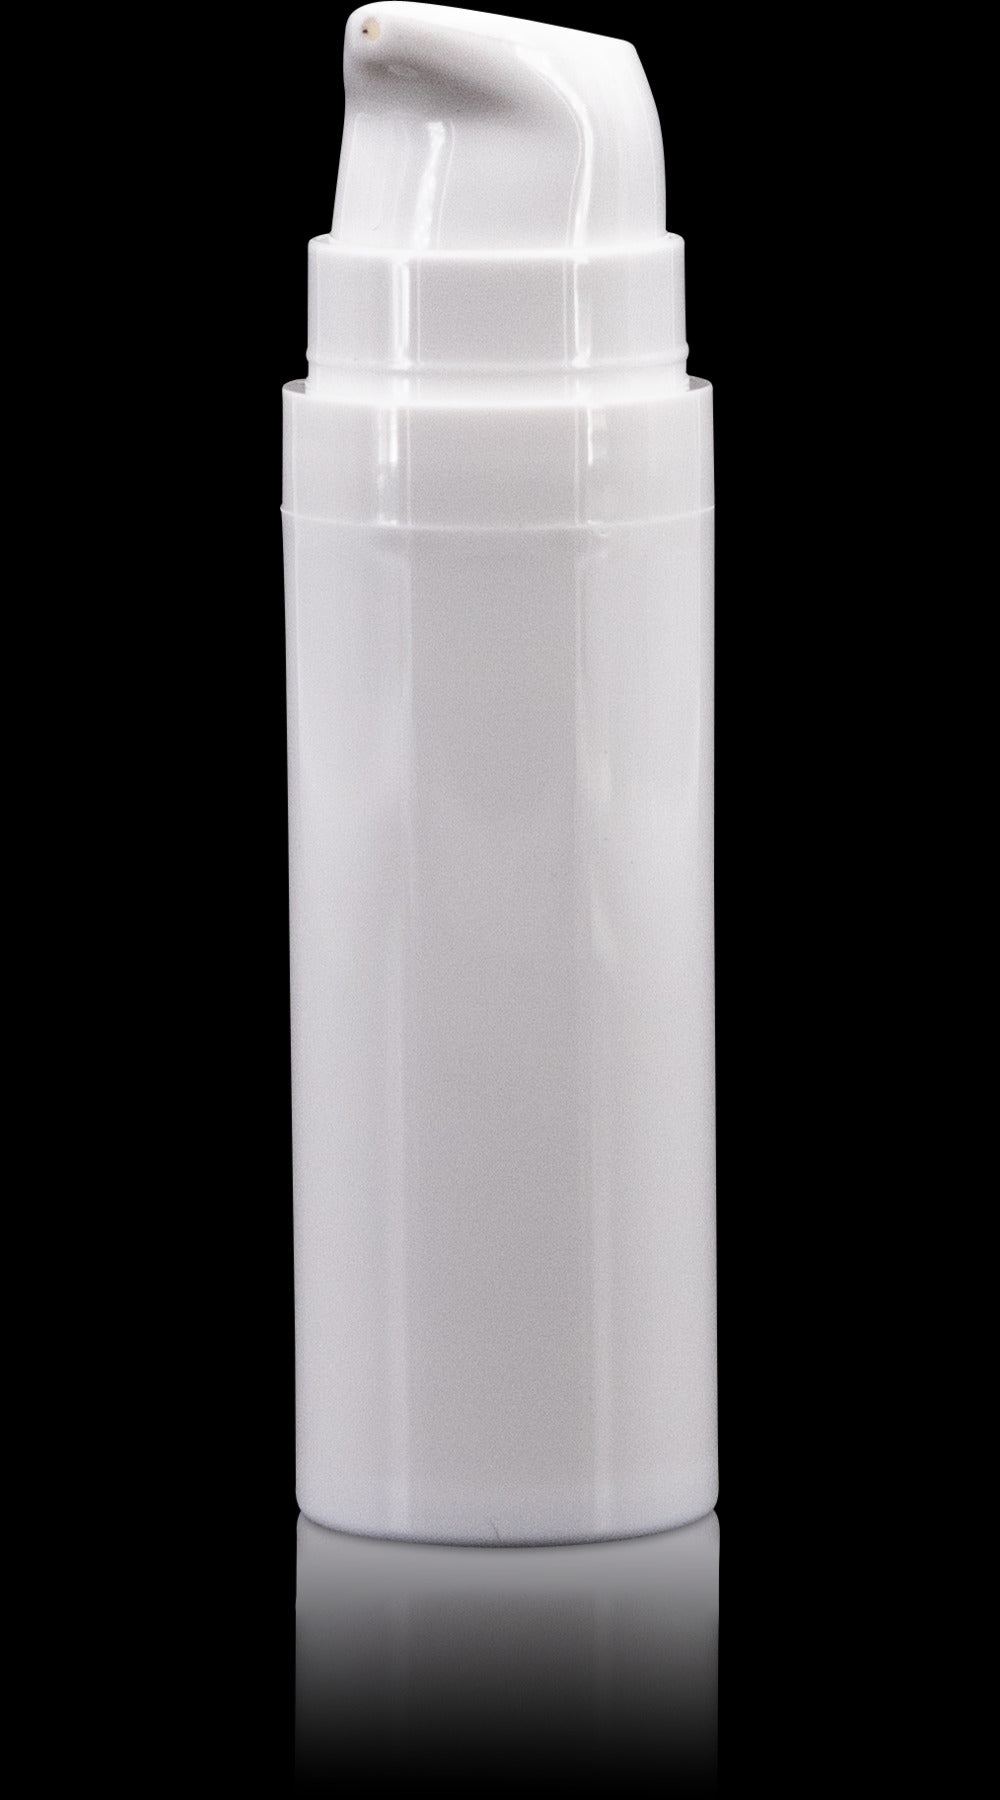 Pure 5 ML White PP Airless Bottle with Frosted Cap